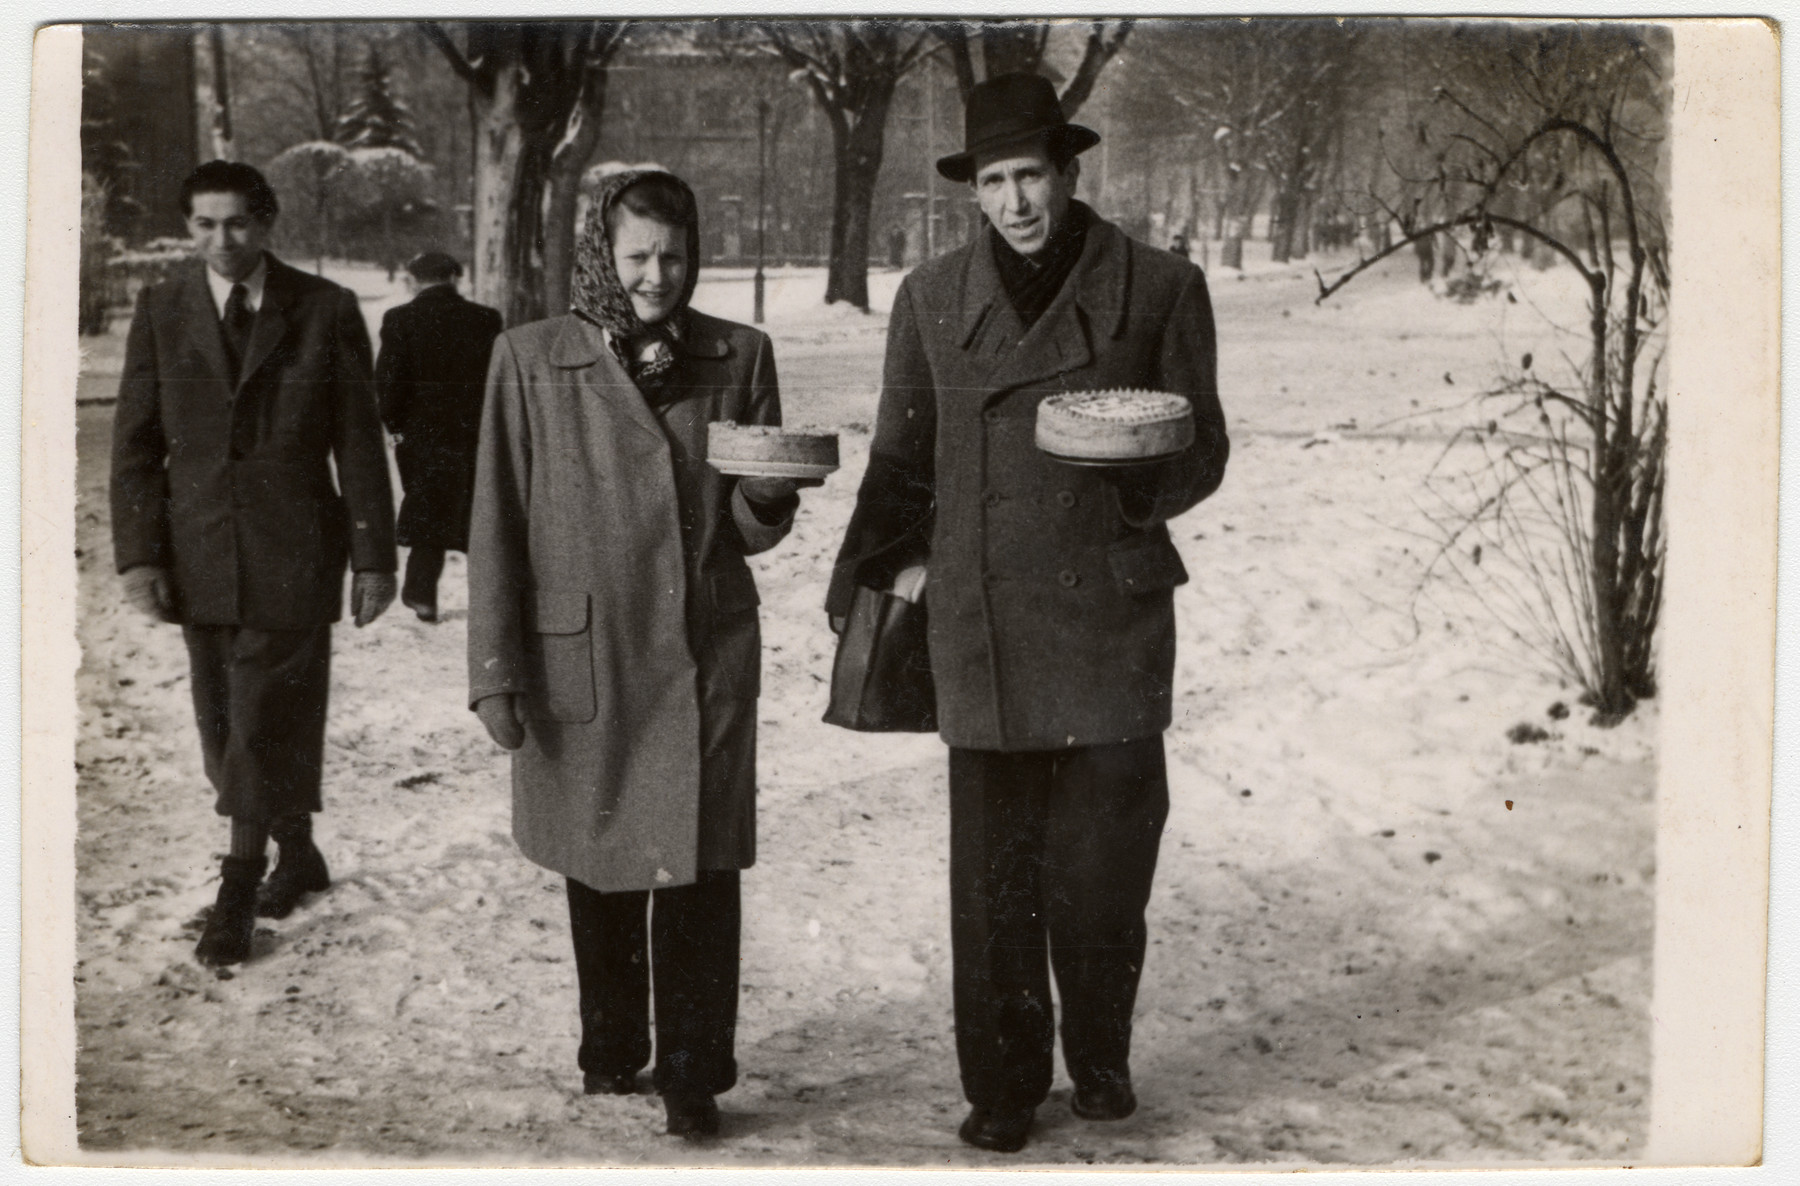 A man and woman walk through the Gabersee displaced persons camp carrying cakes.